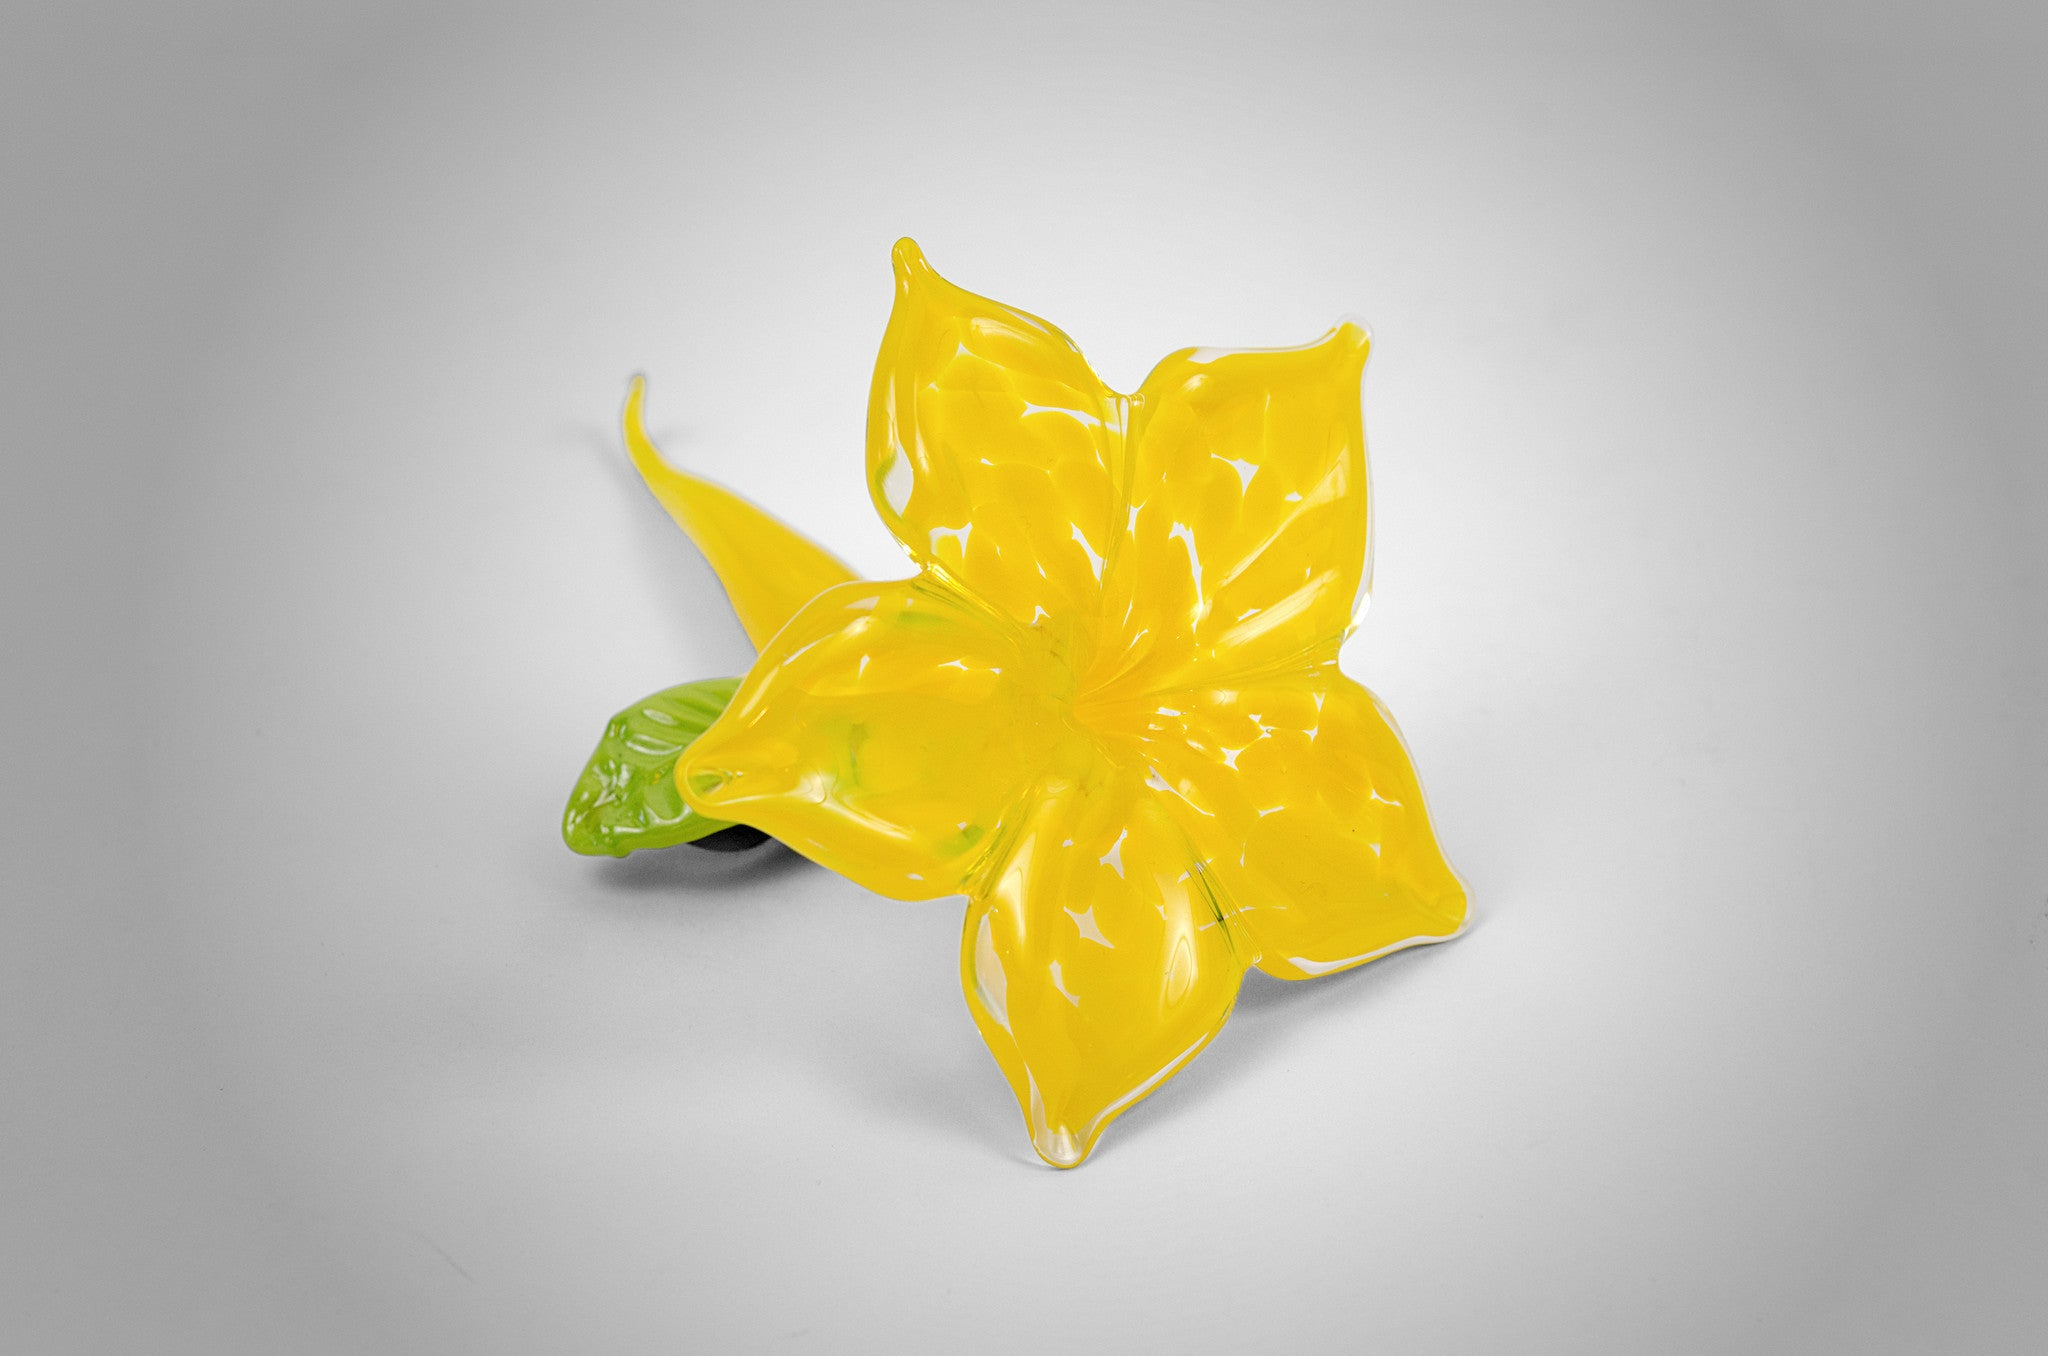 Small unique handmade glass accent flower in yellow color